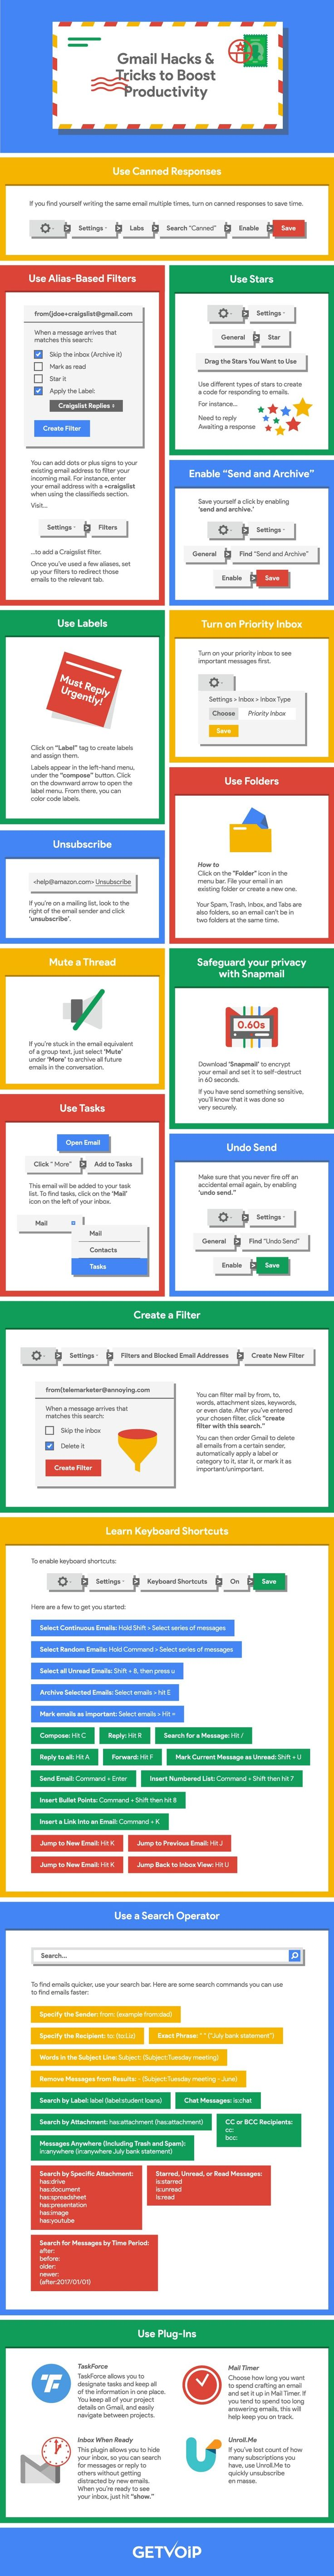 16 Gmail Tips and Tricks To Streamline Your Inbox - #infographic